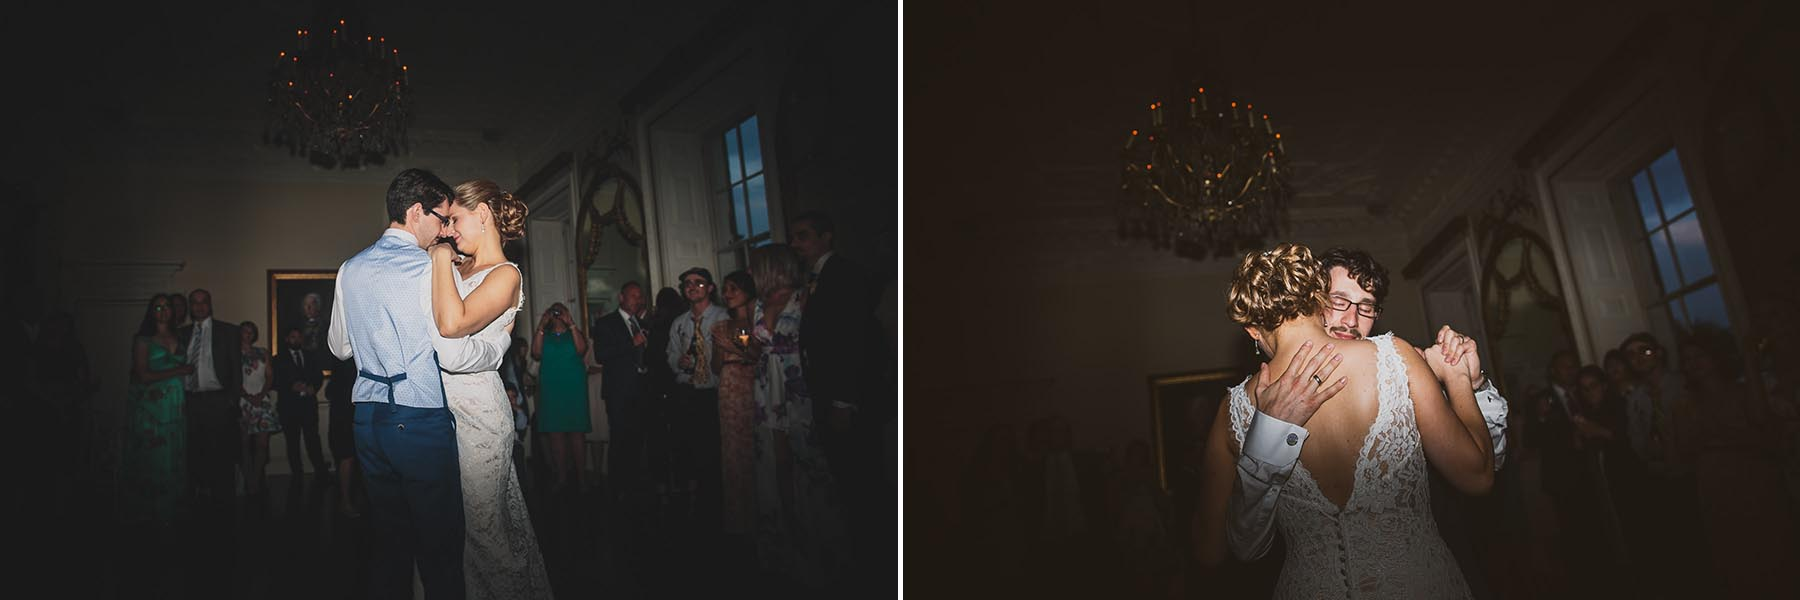 Stanmer-House-Wedding-Photography-Fazackarley-101